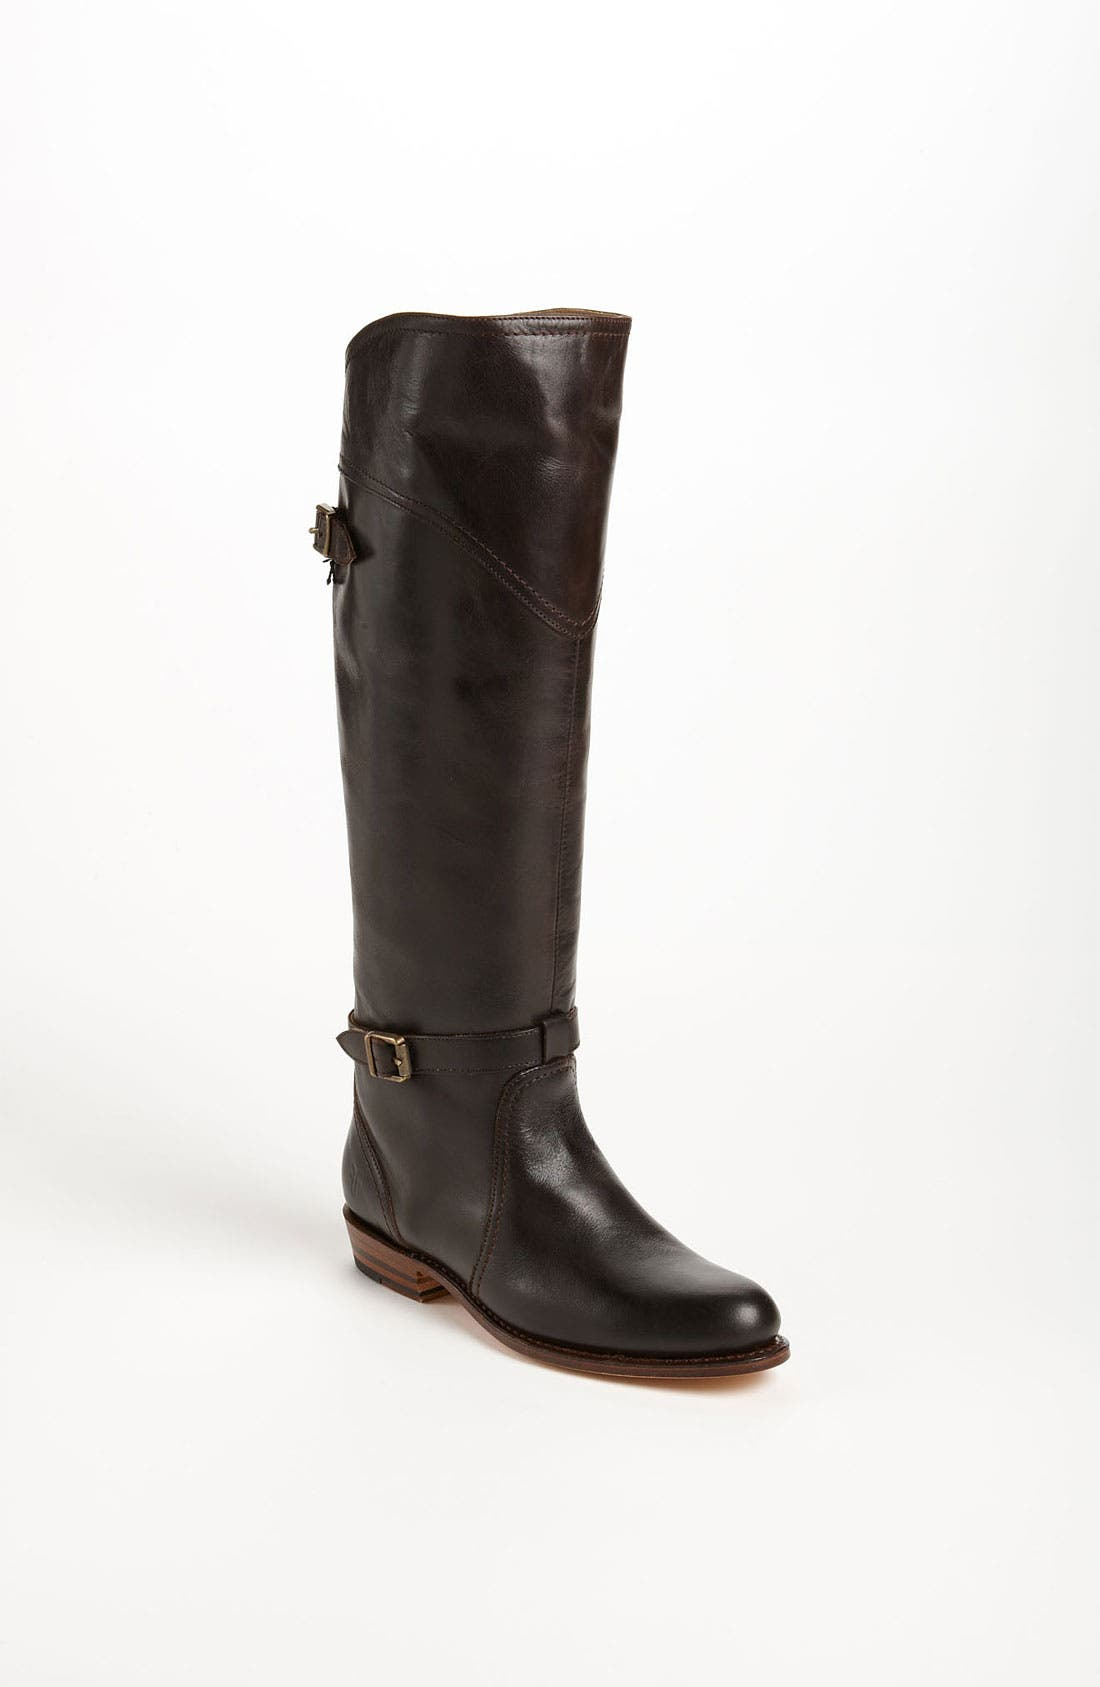 Alternate Image 1 Selected - Frye 'Dorado' Riding Boot (Regular Retail Price: $547.95)